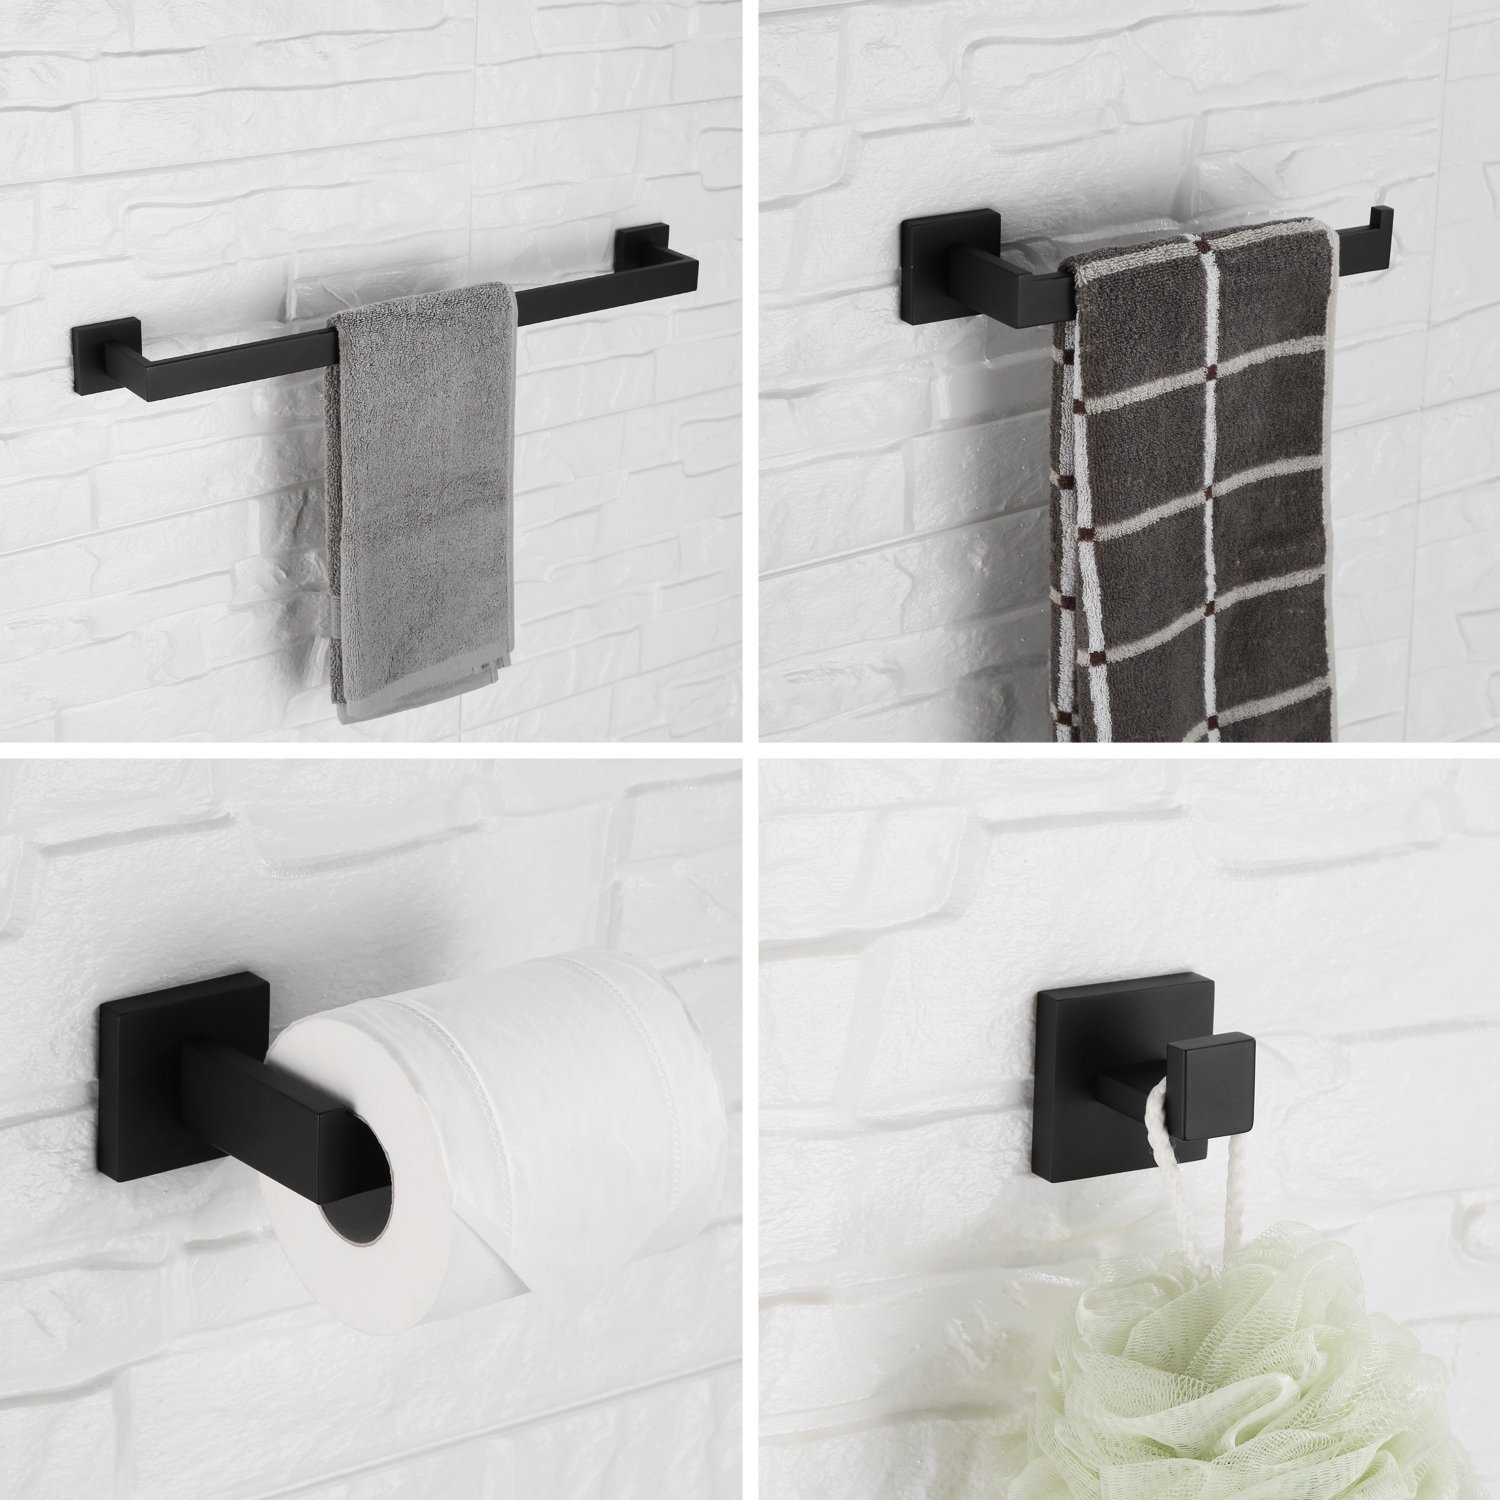 Bathroom Hardware Set Stainless Steel Towel Bath Set Wall Mount Bath Accessories Fixture Mounting Kits Towel Bar Ring Hanger bath towel set 2 pieces soft kiss bath towel set 2 pieces